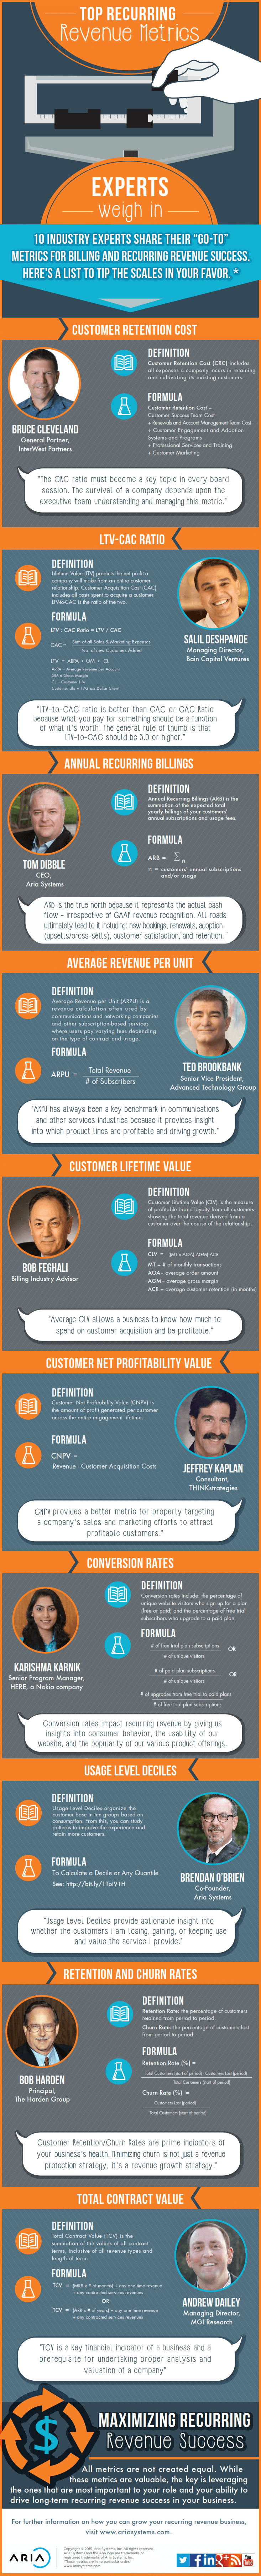 Aria_Recurring-Revenue-Infographic_Final-1-4-15_001-compressor (1)